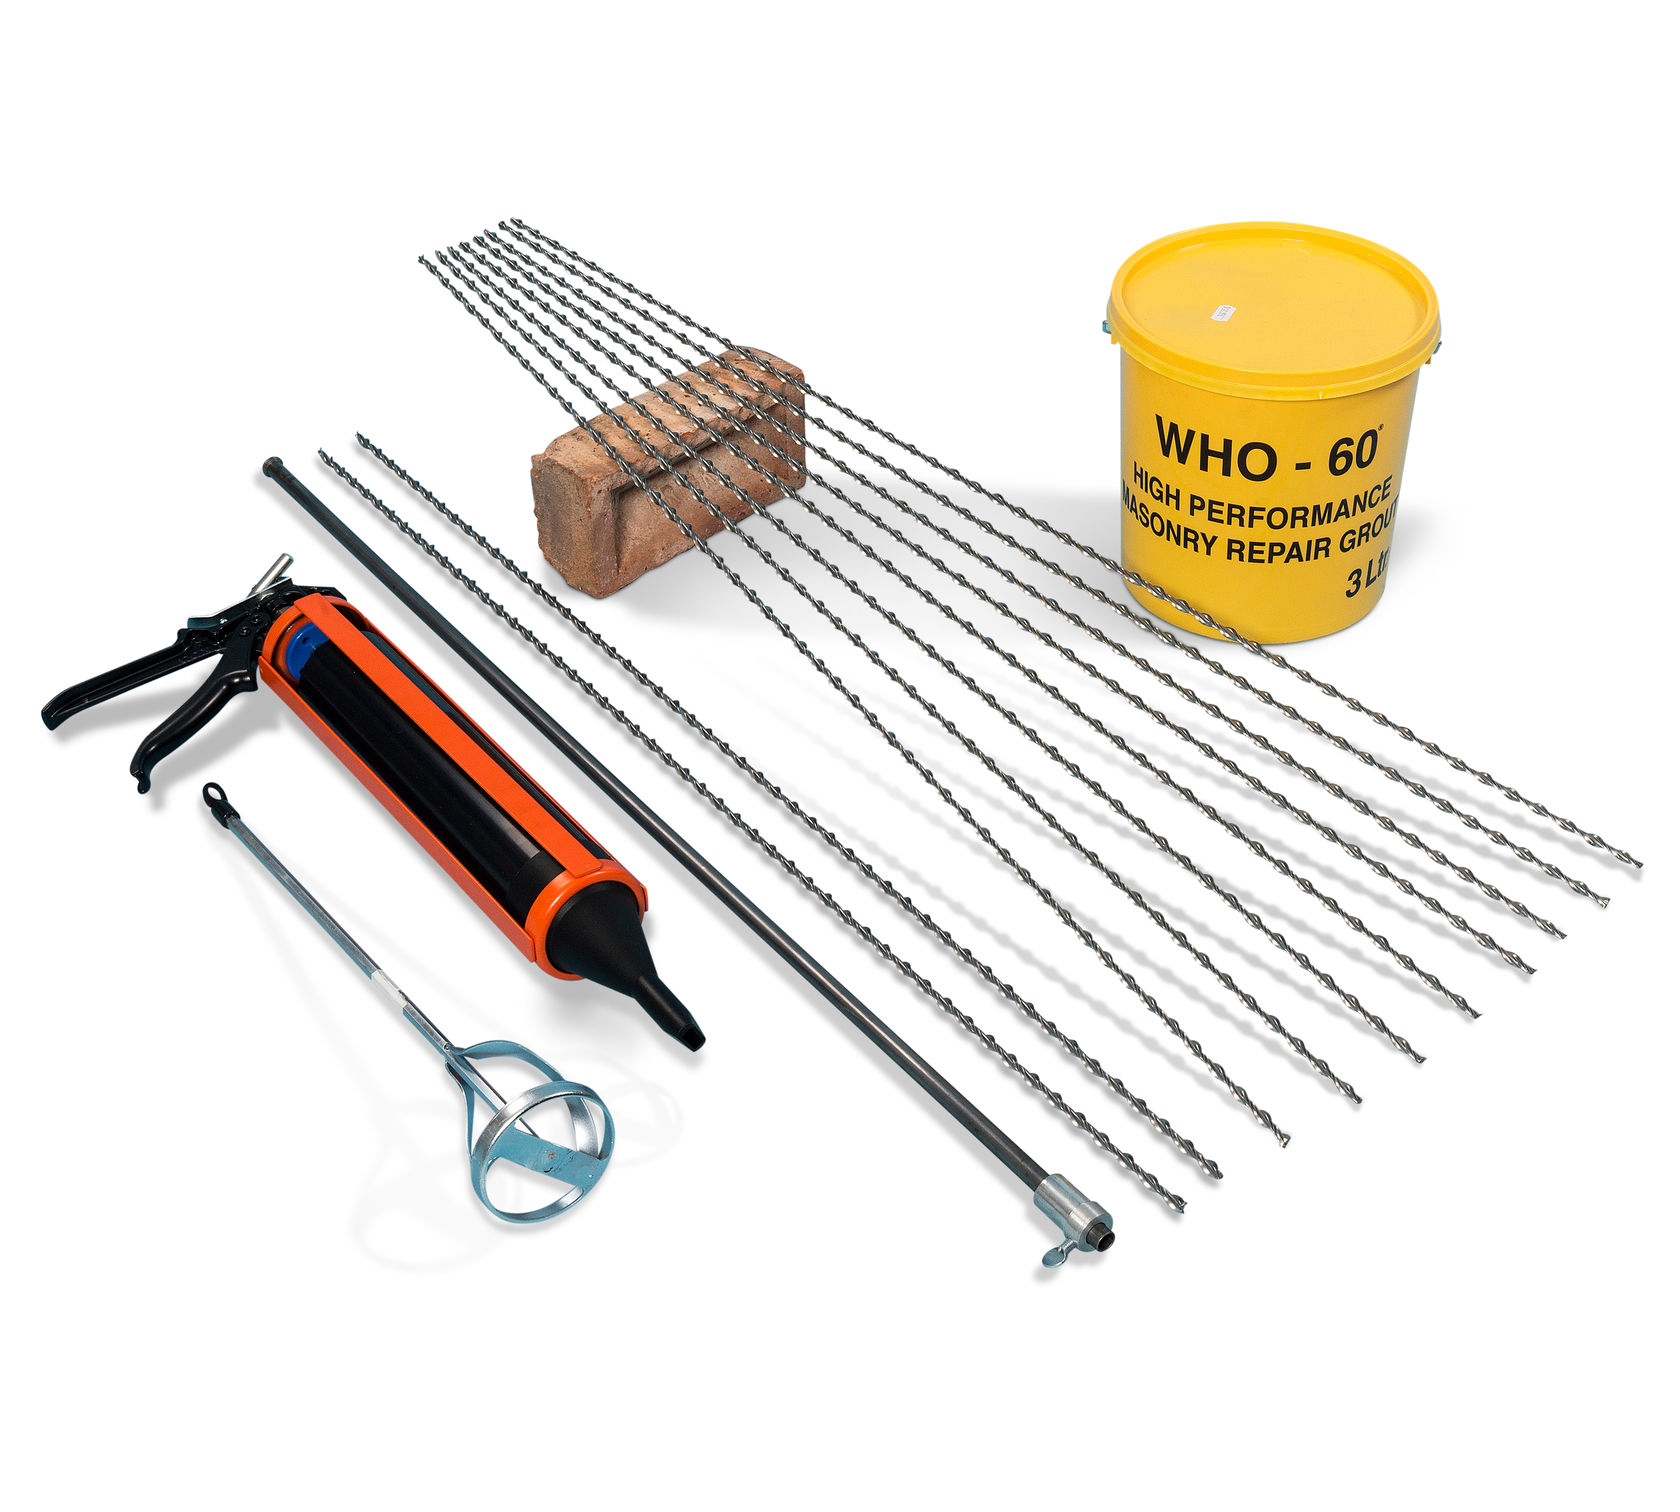 8mm x 1m STAINLESS STEEL HELICAL WALL MASONRY MORTAR CRACK STITCHING BARS 10